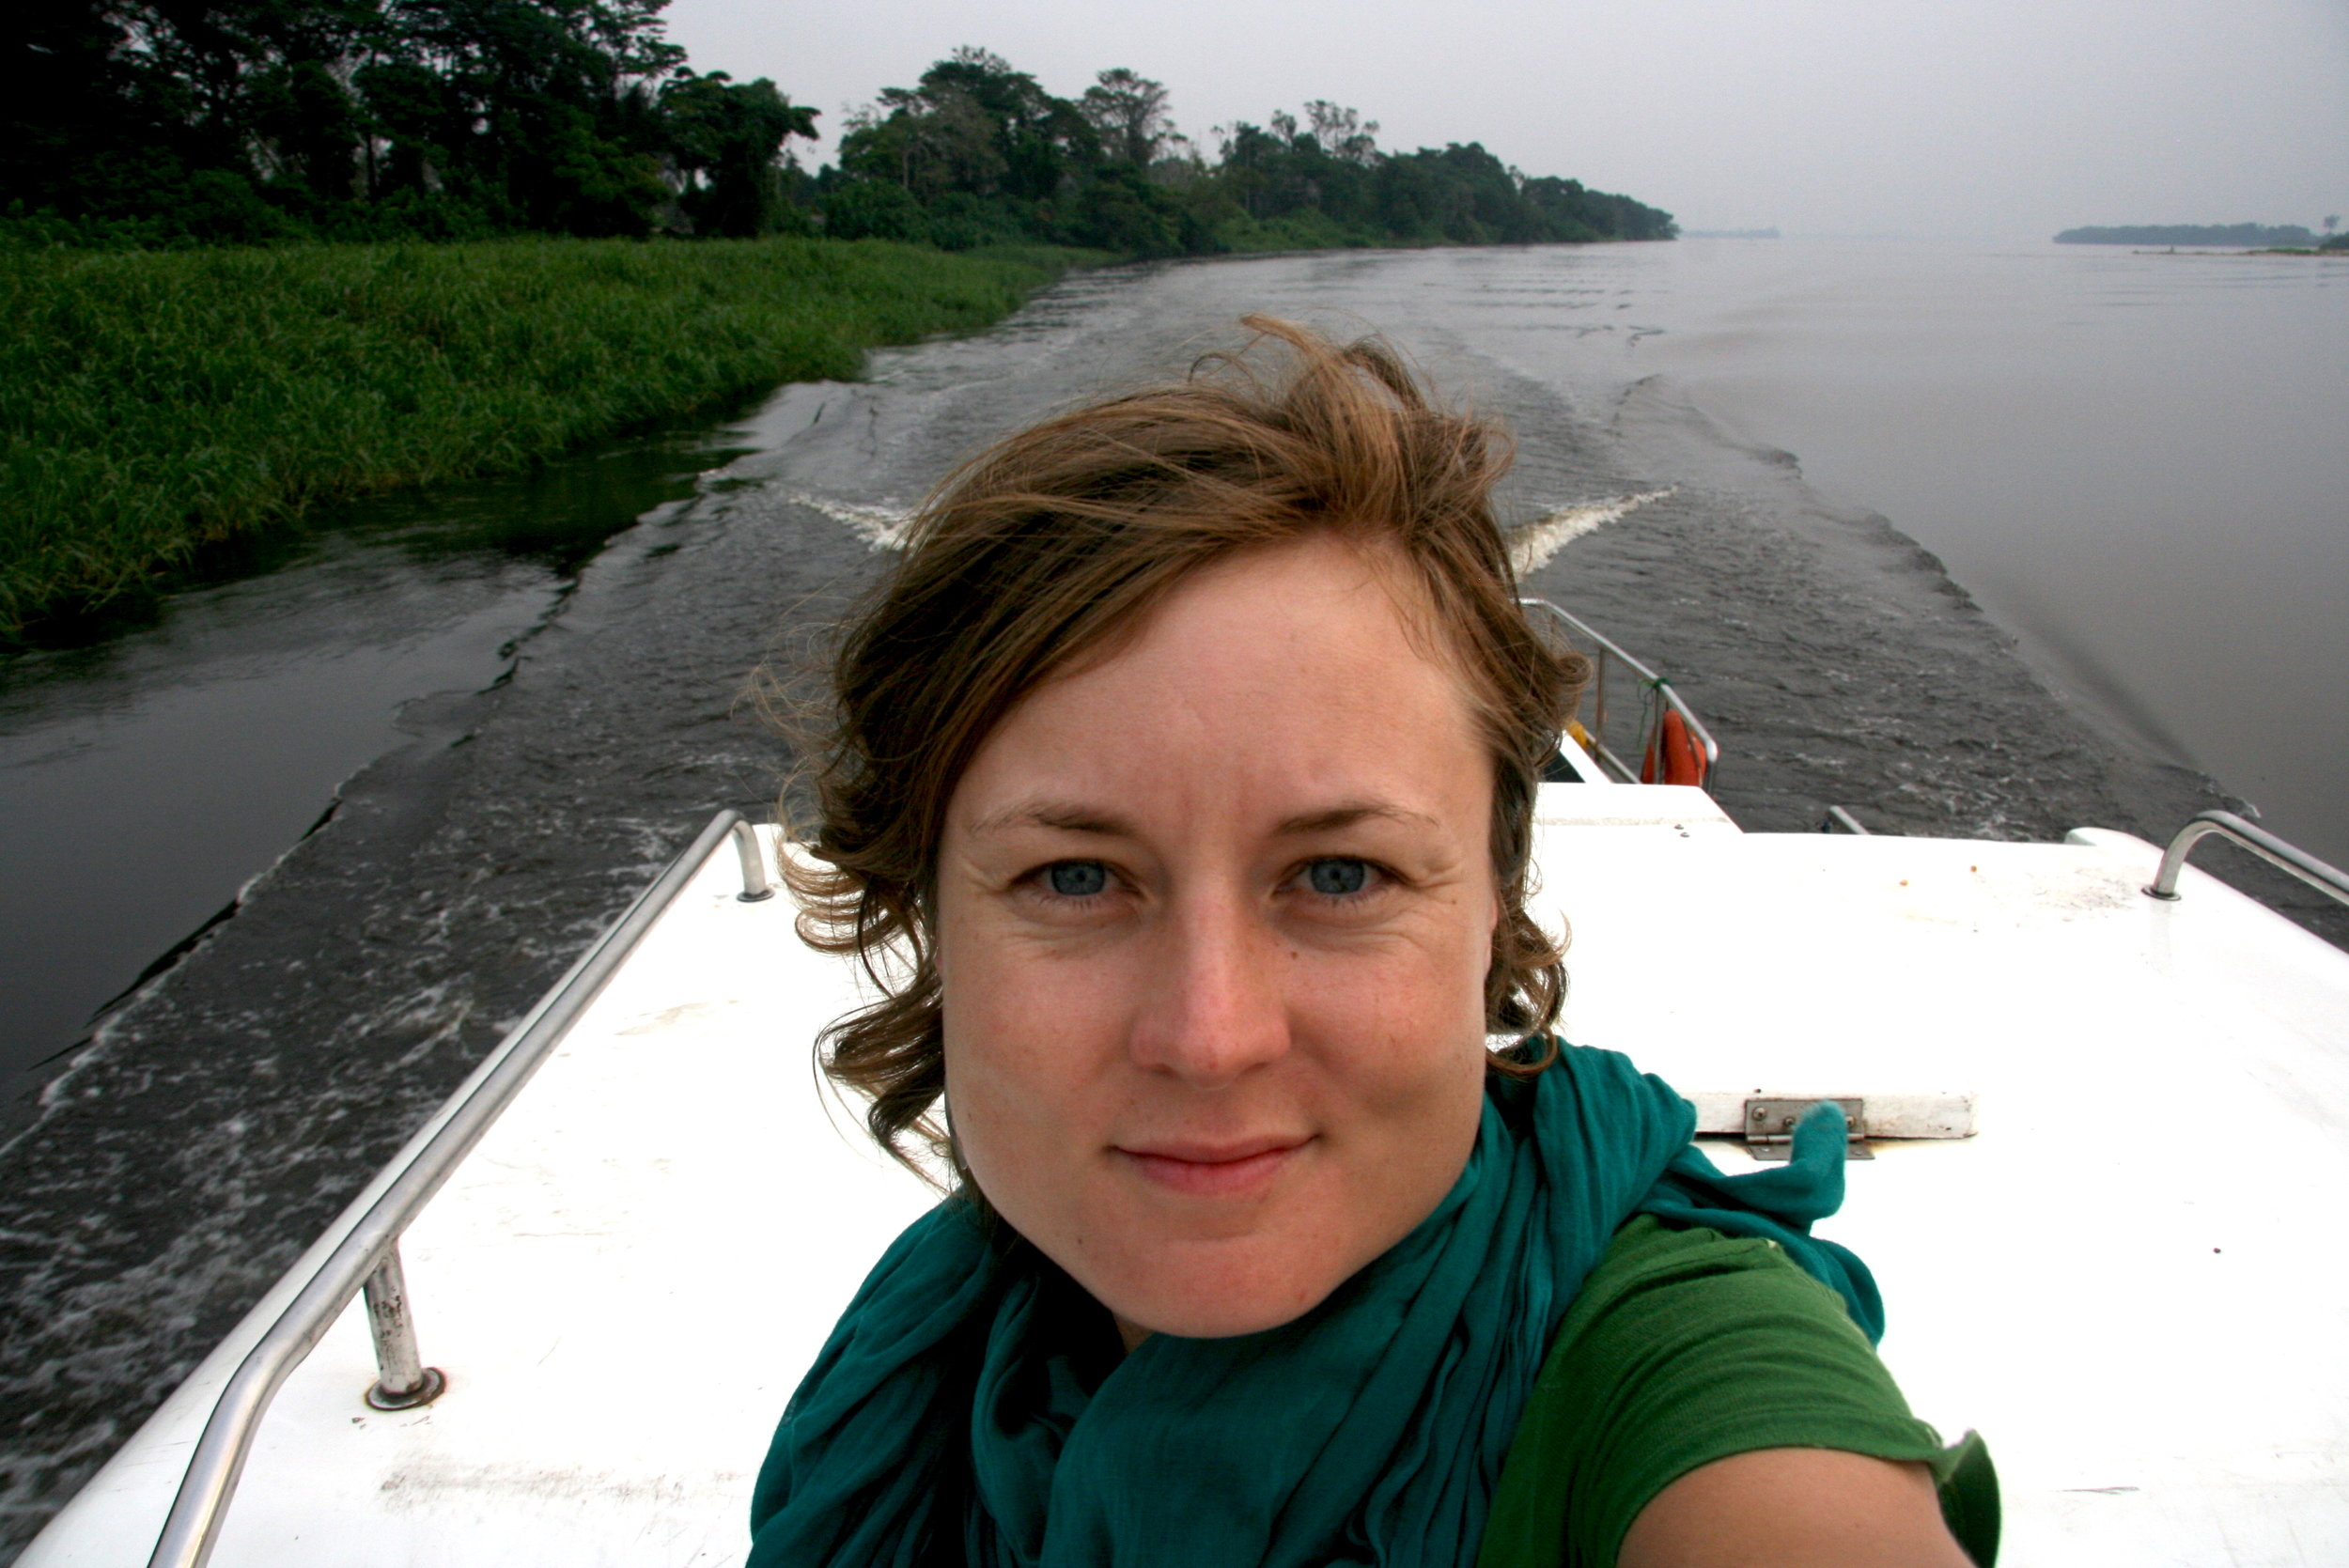 On the Congo River in 2012